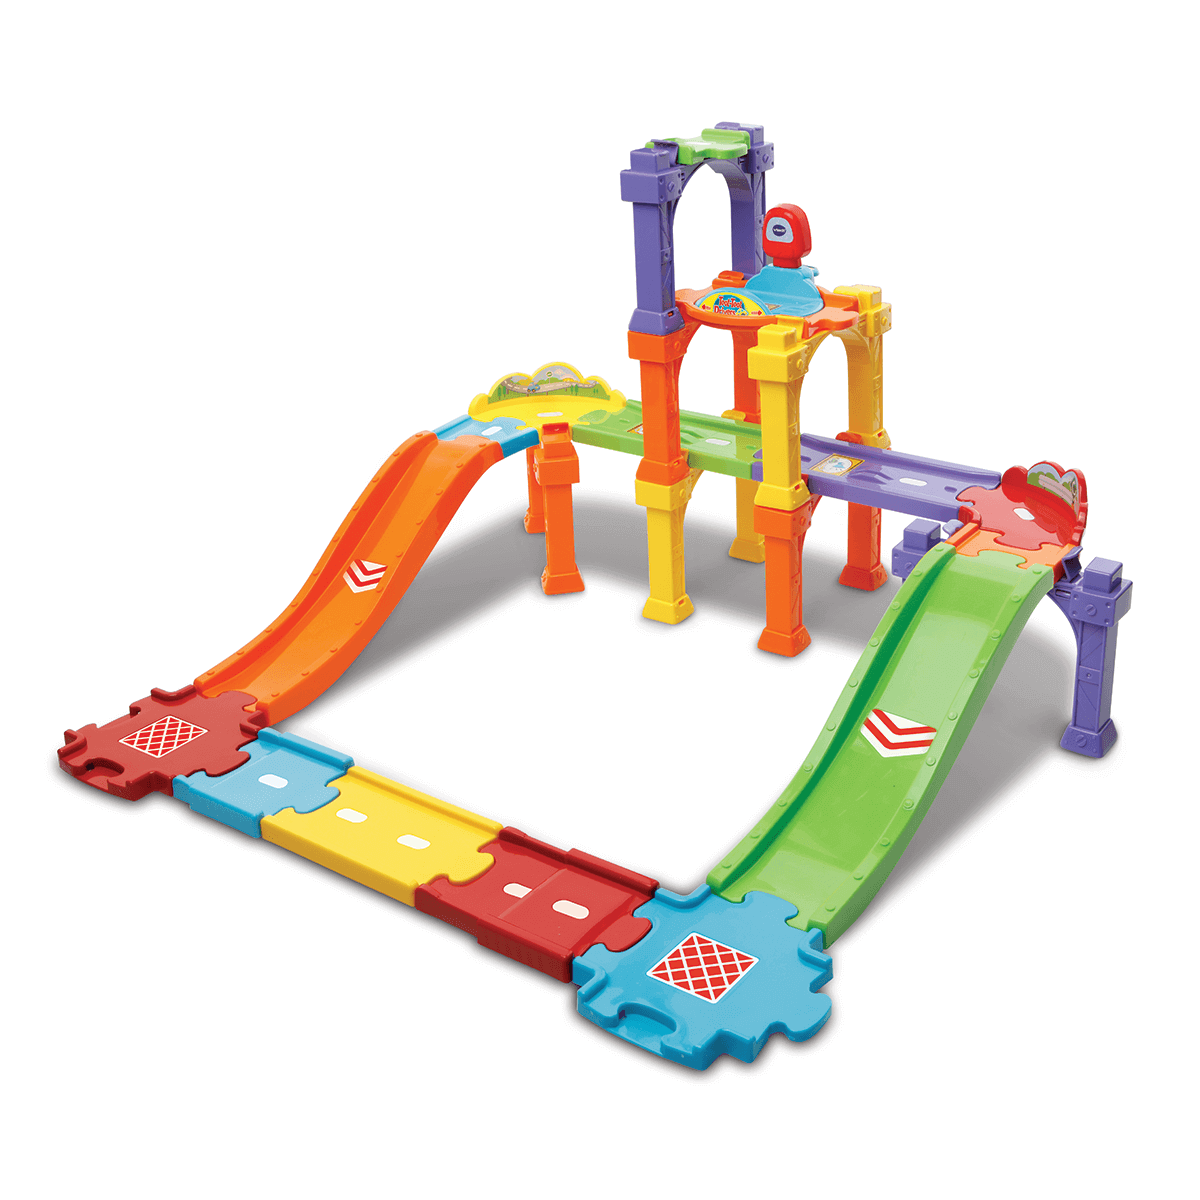 VTech Toot-Toot Drivers Ultimate Track Set from Early Learning Center